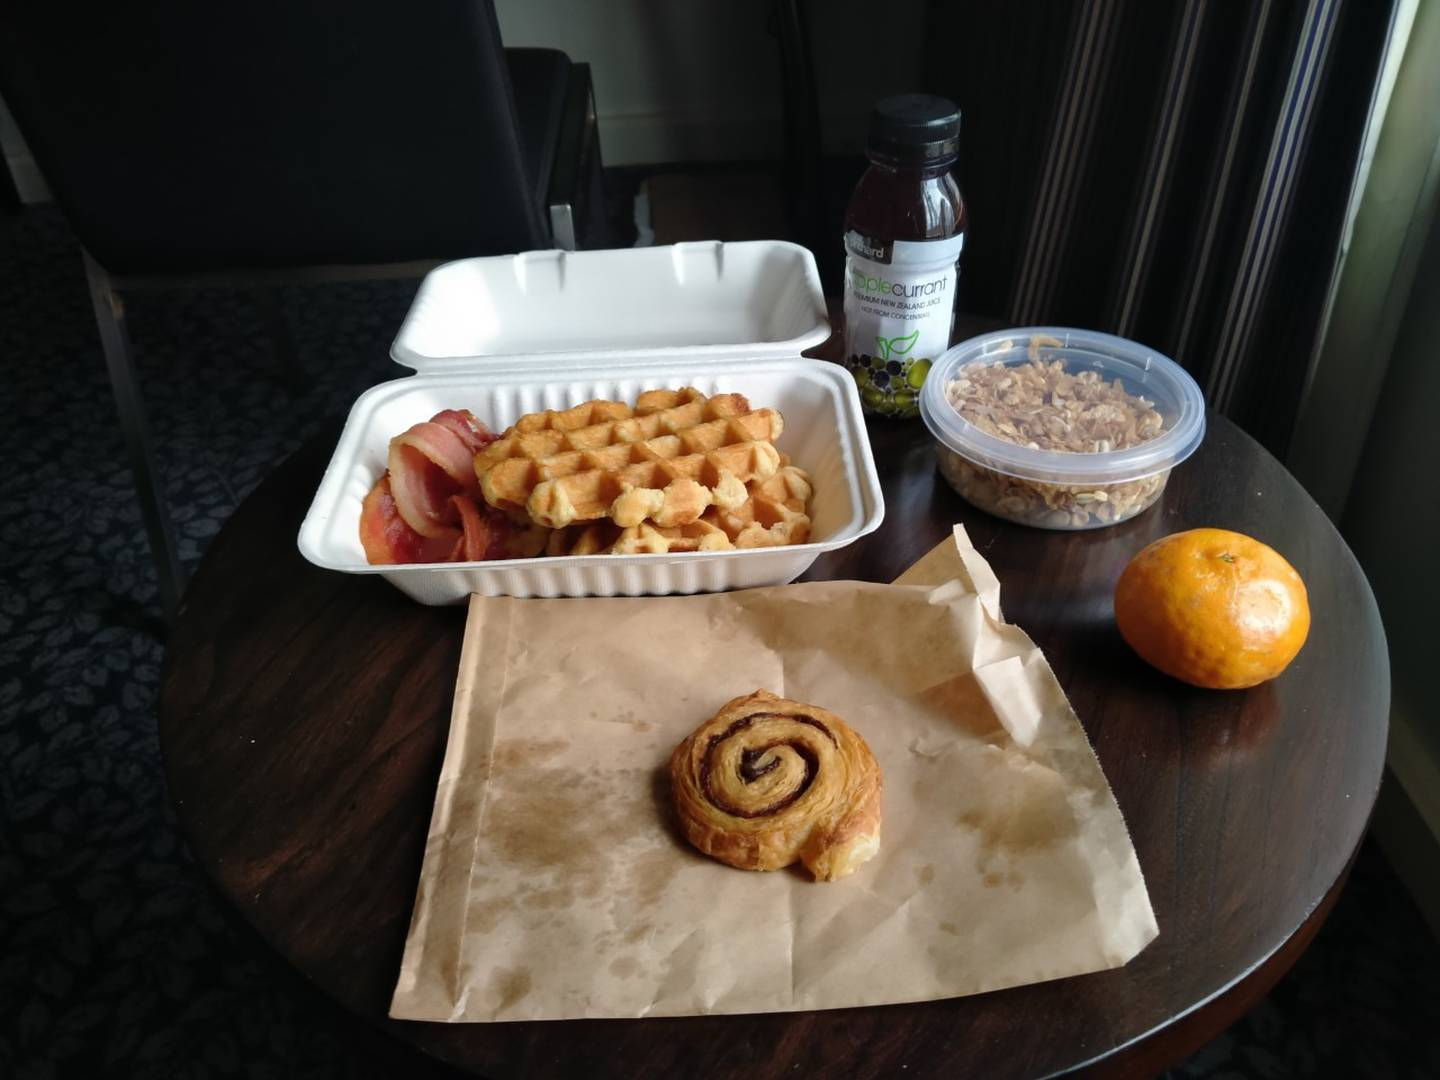 The man is upset at not being given any maple syrup with his waffles [pictured] and bacon for two...